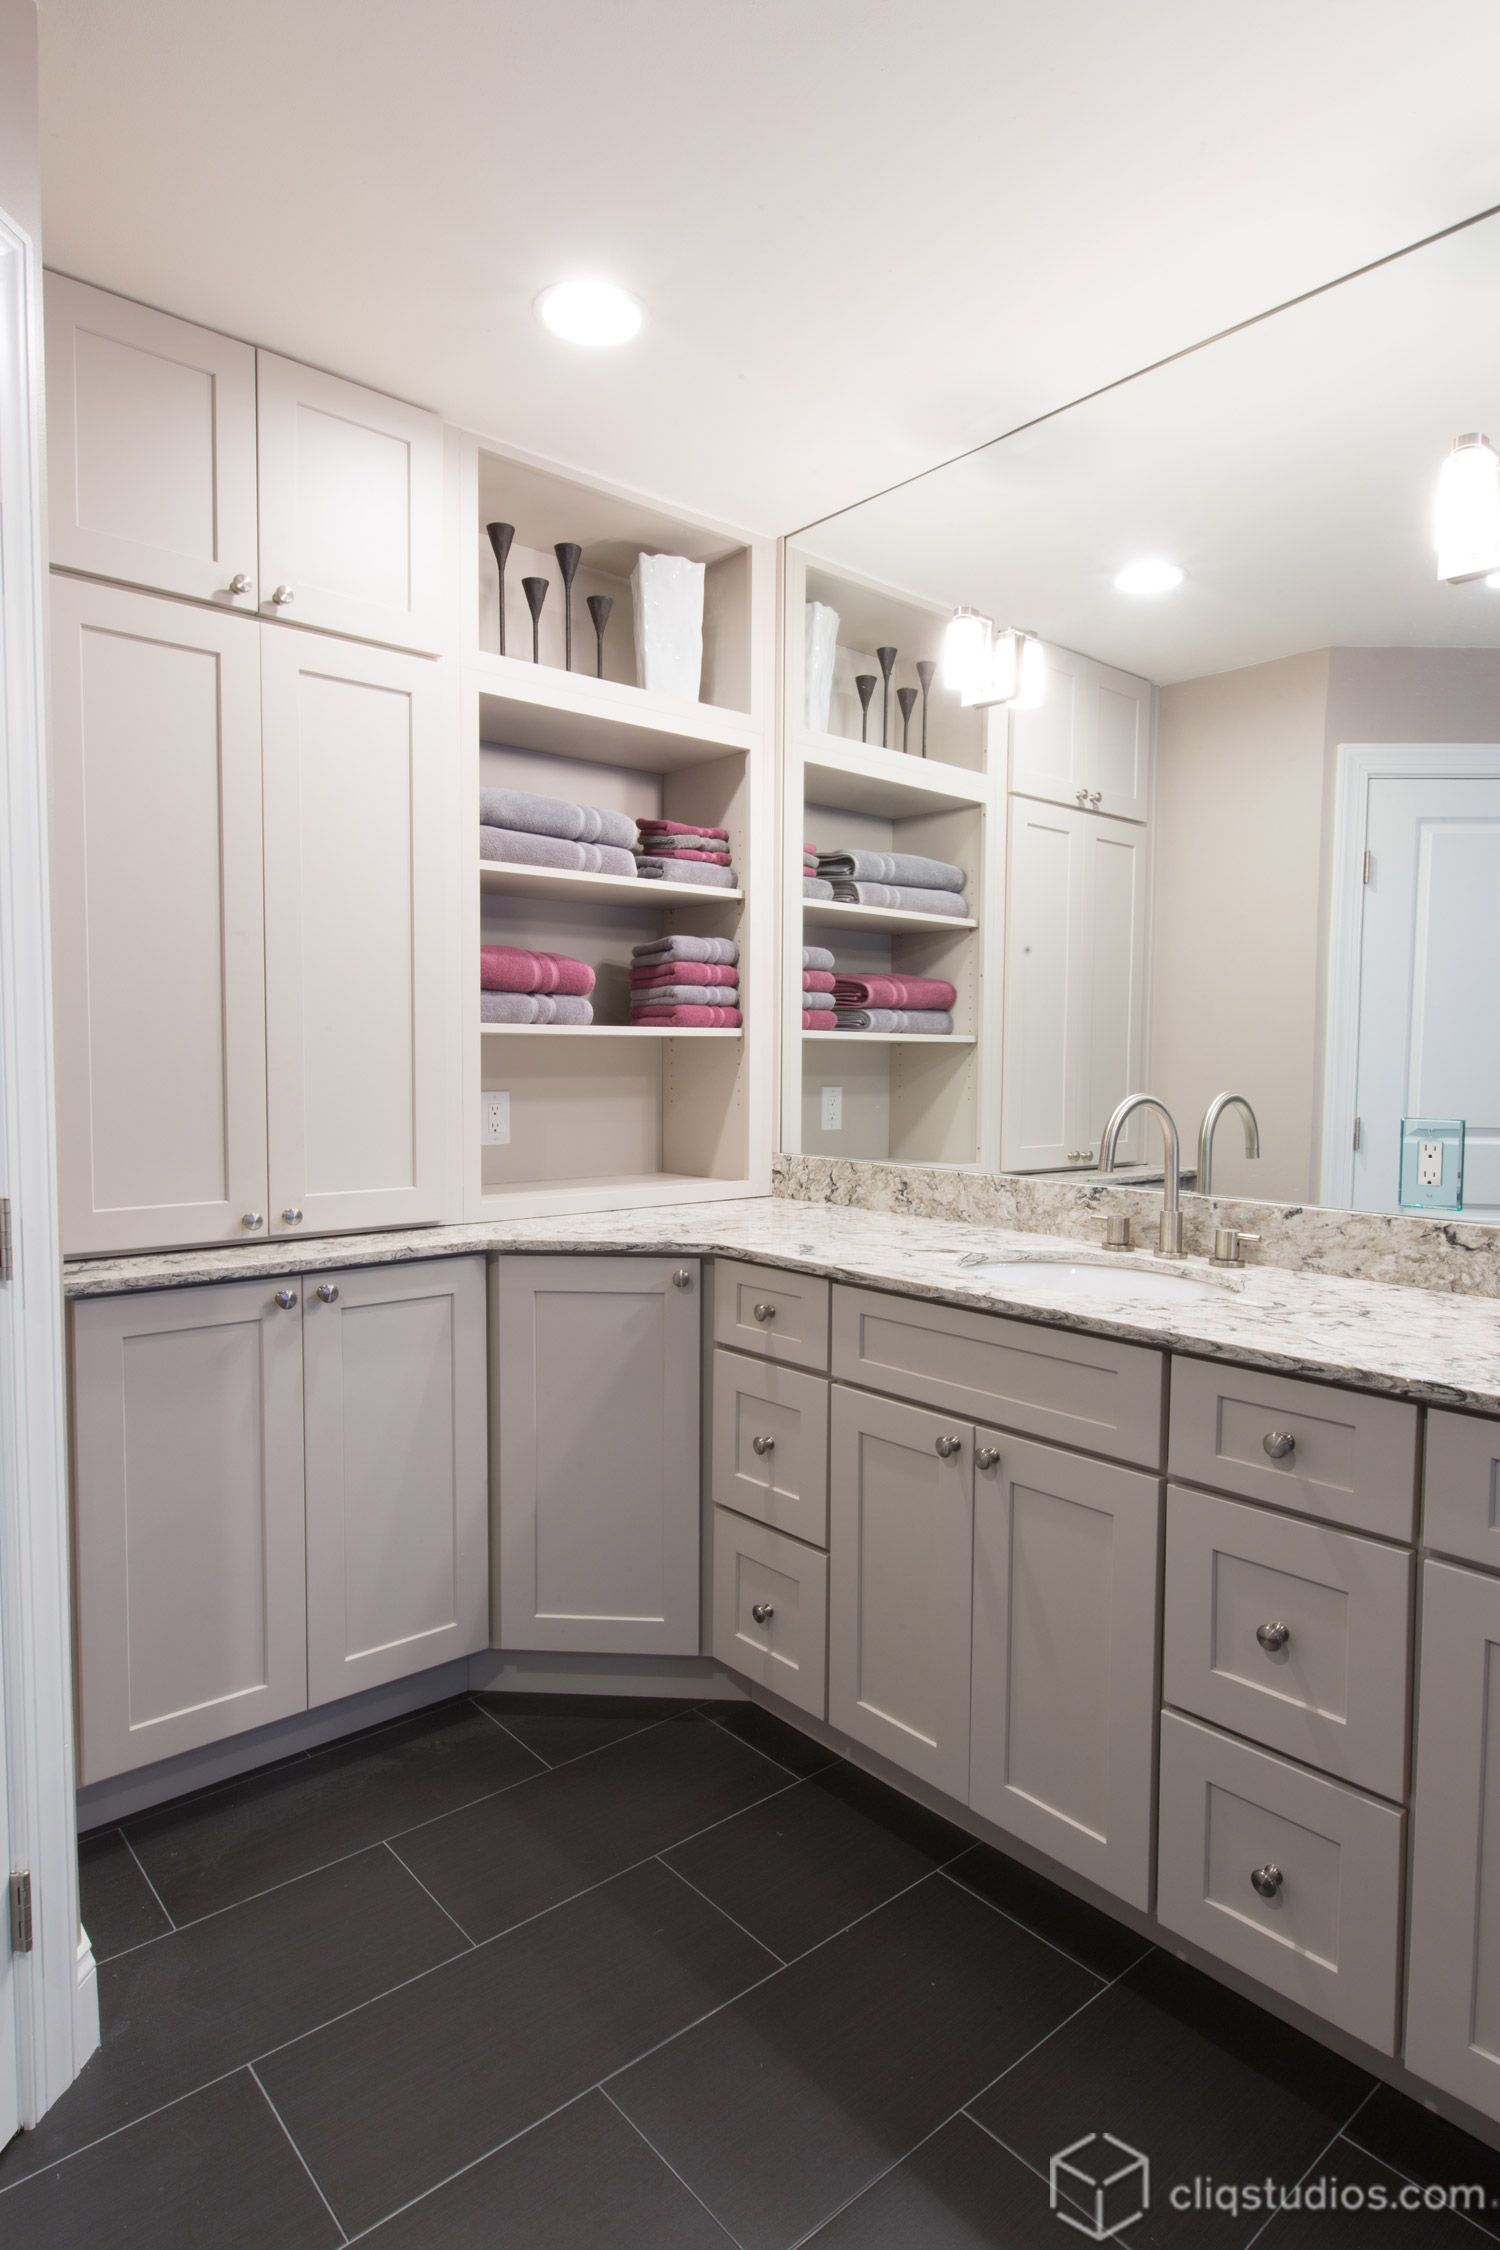 Dayton Painted Linen Mission Bath Vanity Cabinets From Cliqstudios